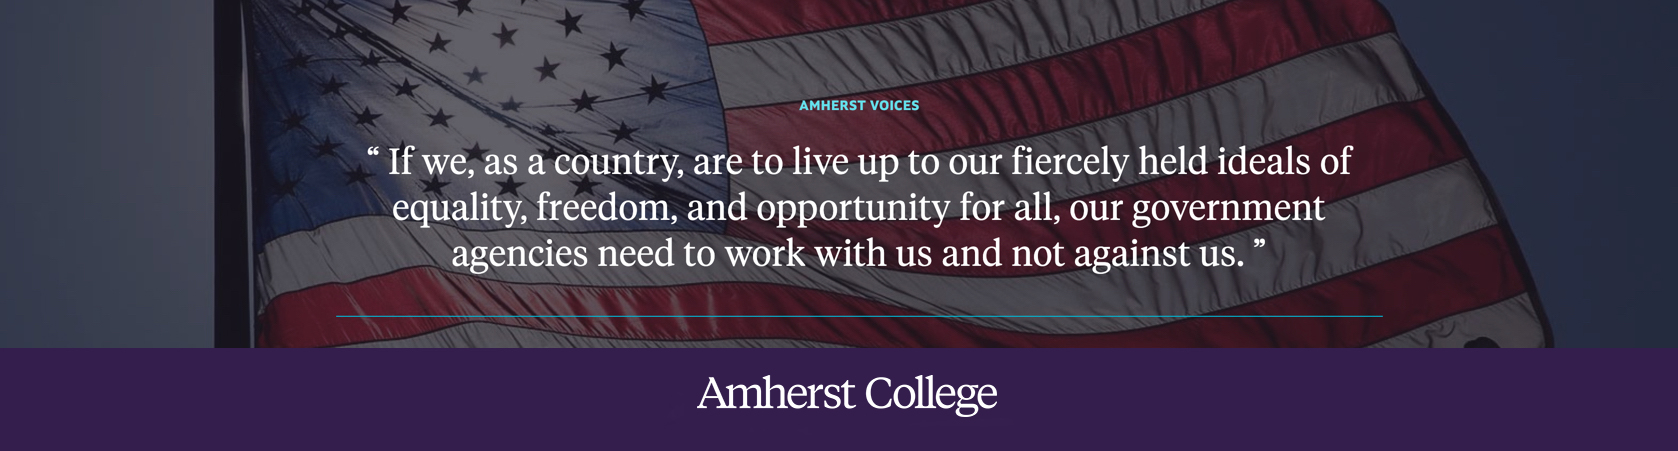 If we, as a country, are to live up to our fiercely held ideals of equality, freedom, and opportunity for all, our government agencies need to work with us and not against us.